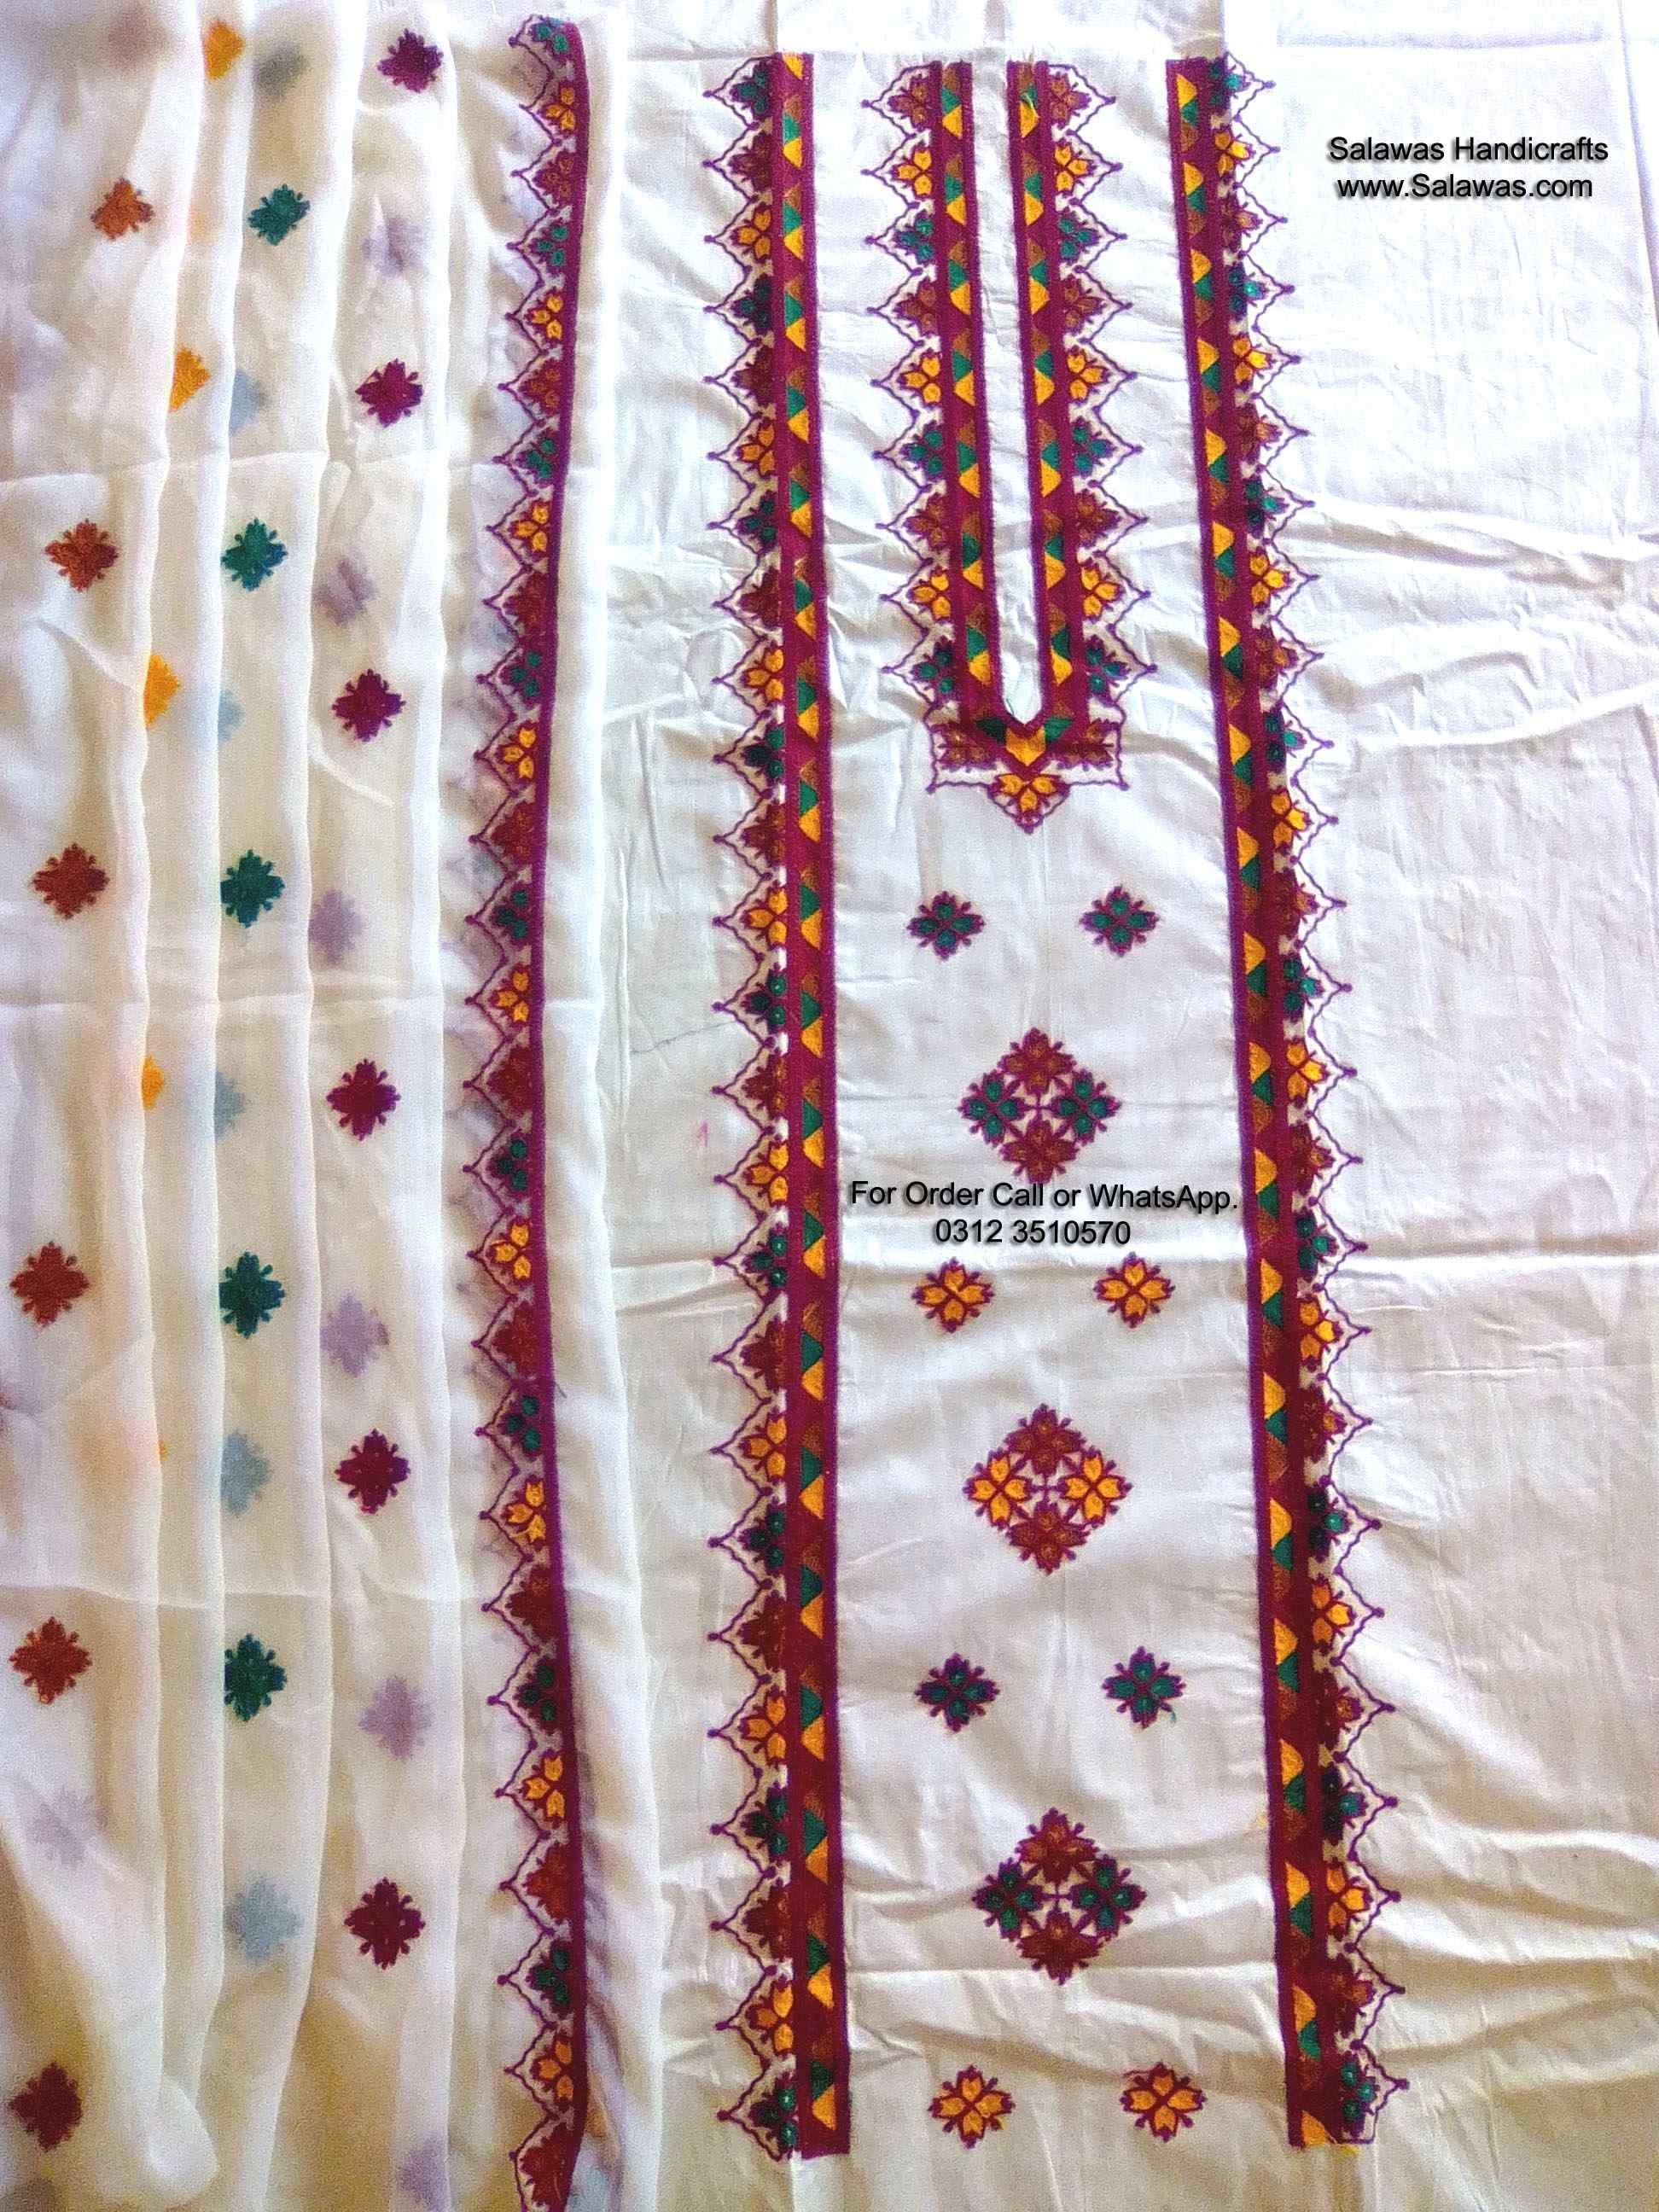 0b6fa7cdd4c4 This is Sign of Sindhi Culture